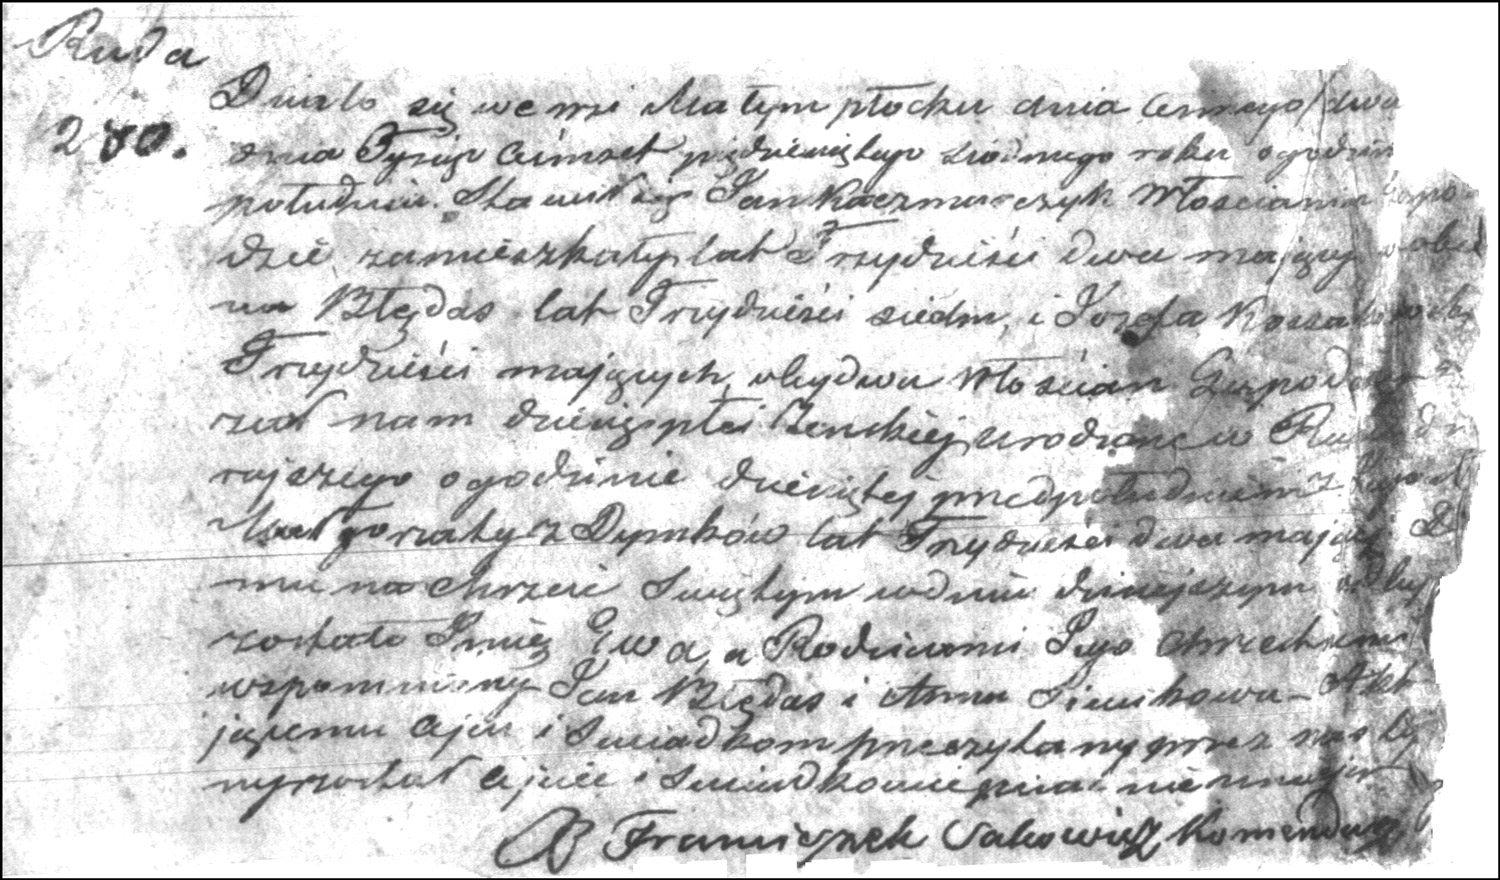 The Birth and Baptismal Record of Ewa Kaczmarczyk – 1857